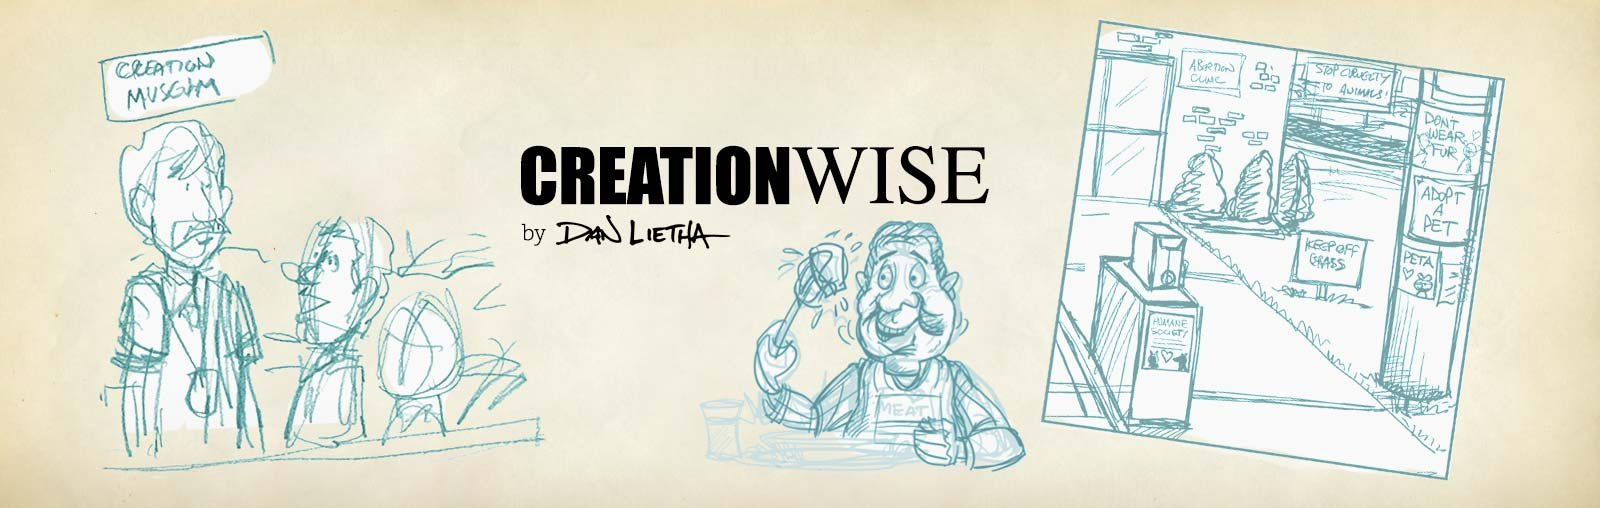 Creation Wise